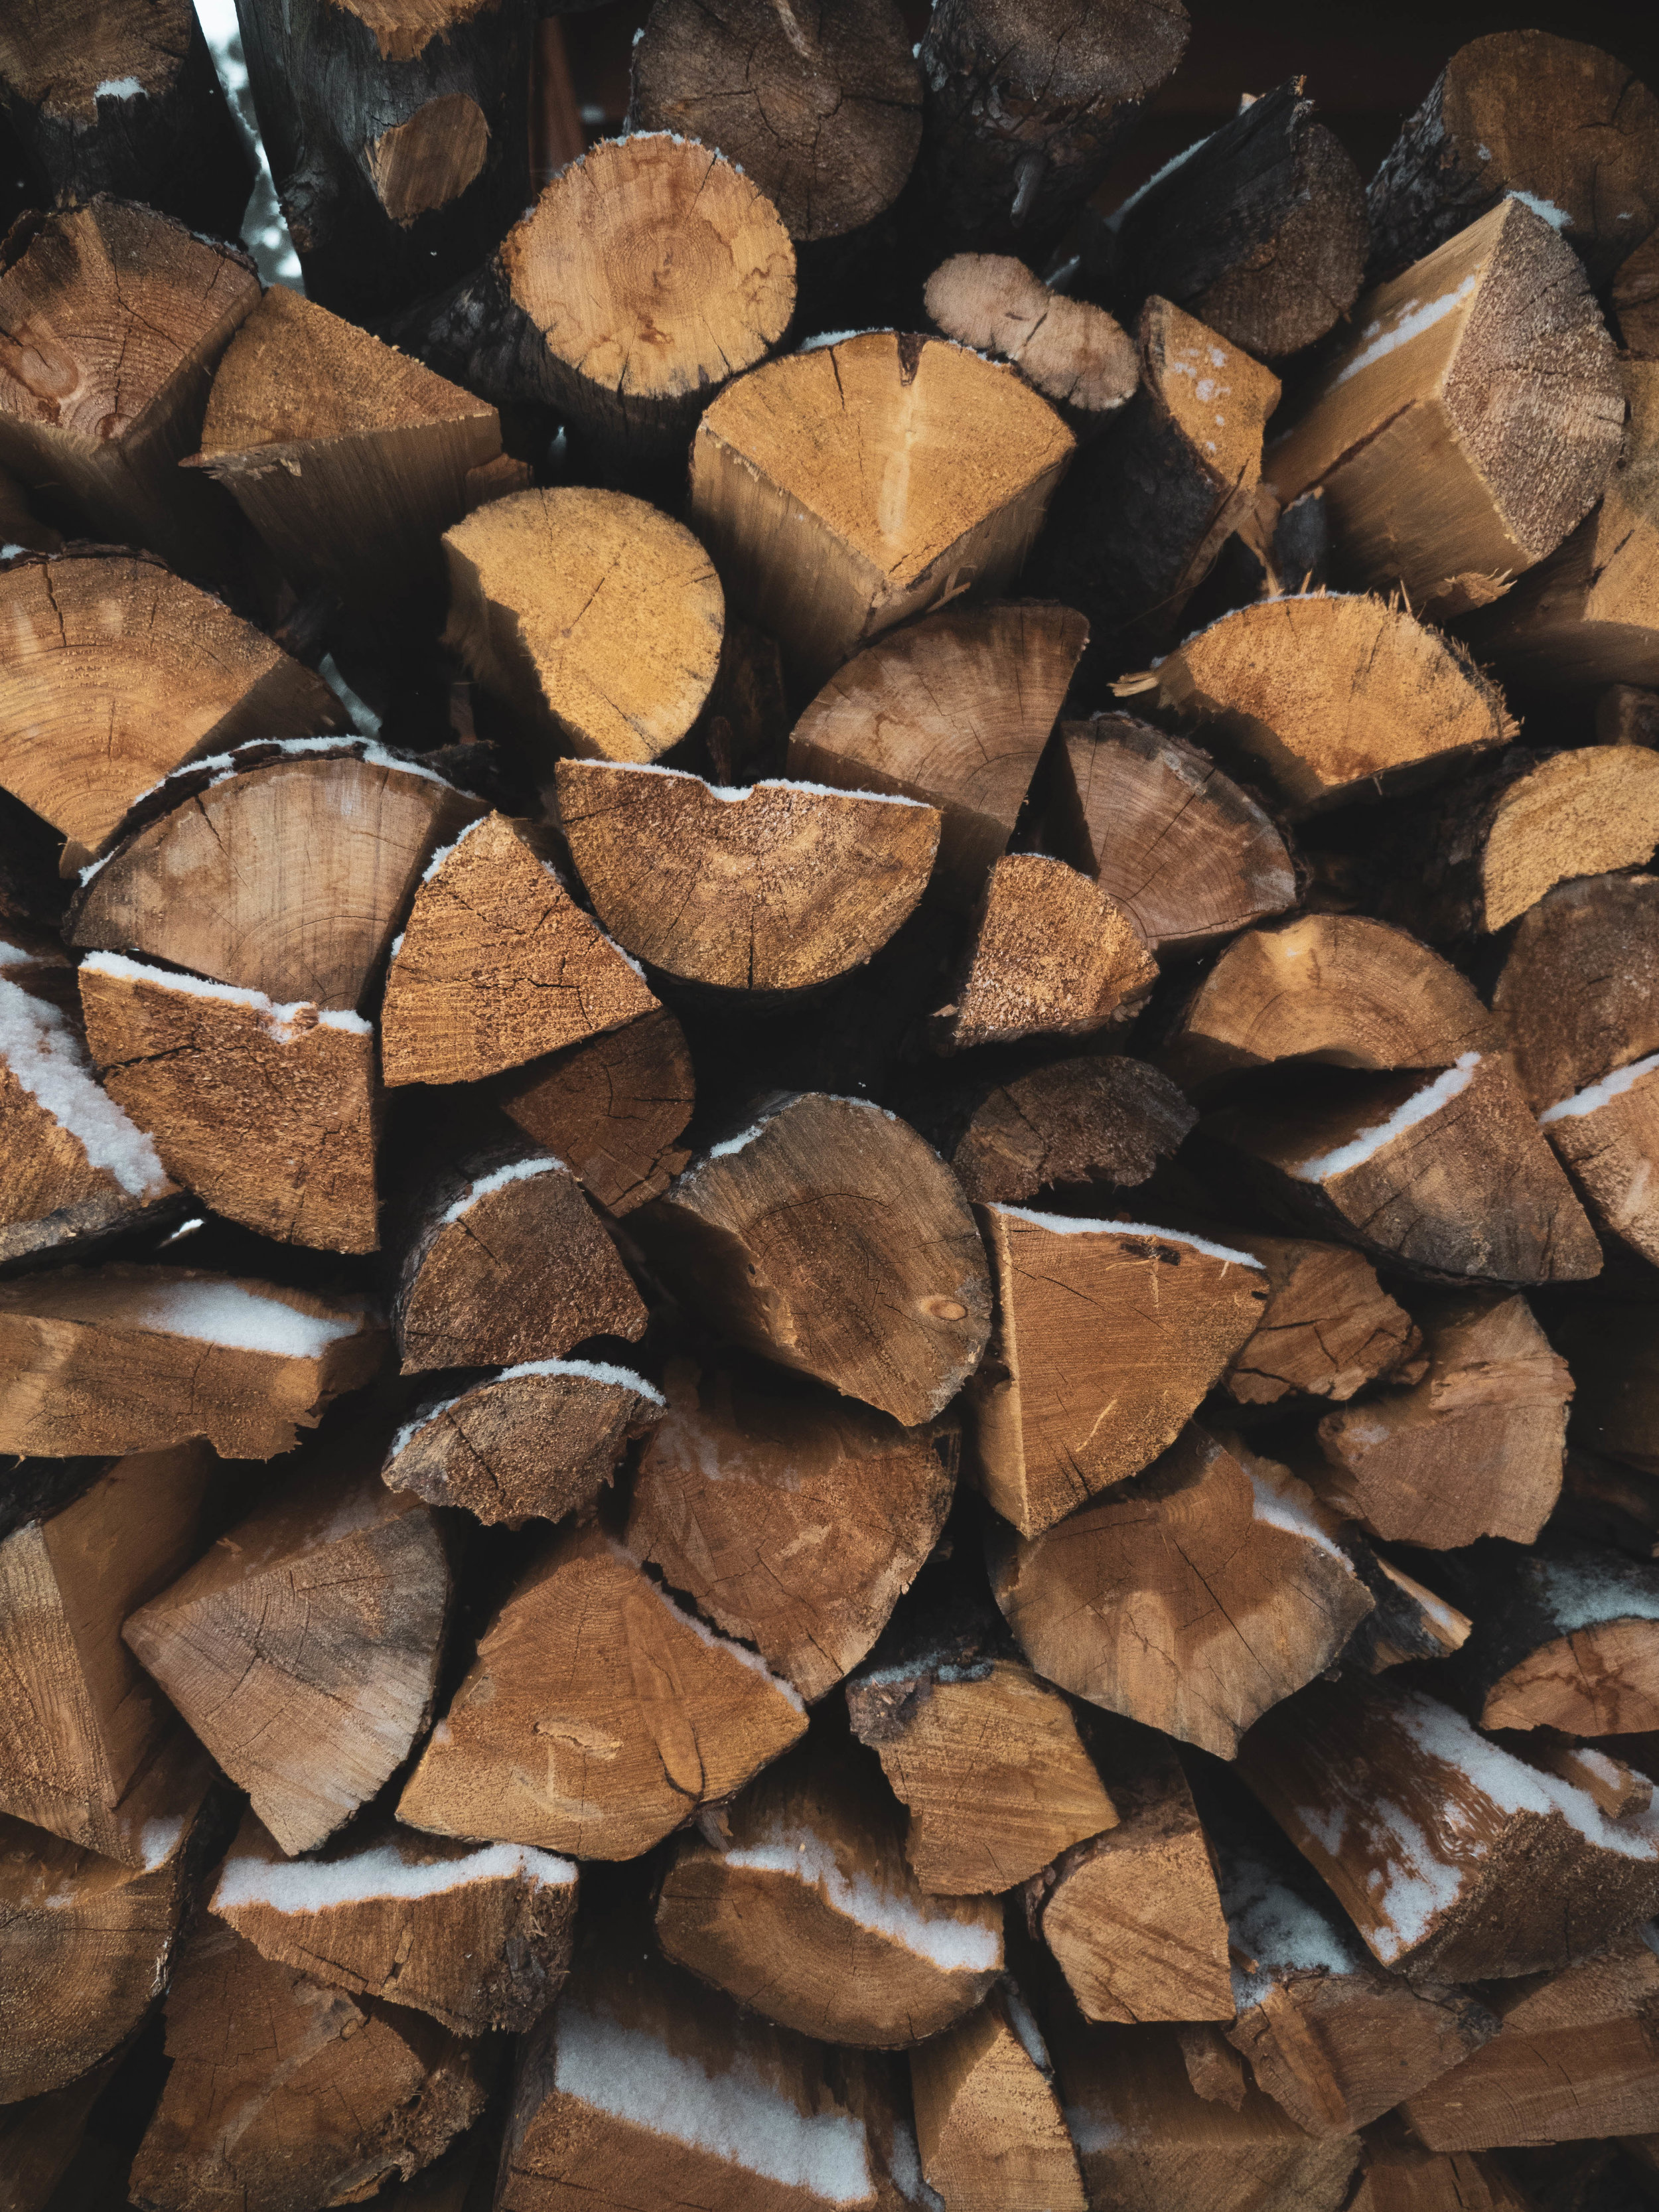 WOOD BUNDLES& FIRE LOGS - Available for purchase on site